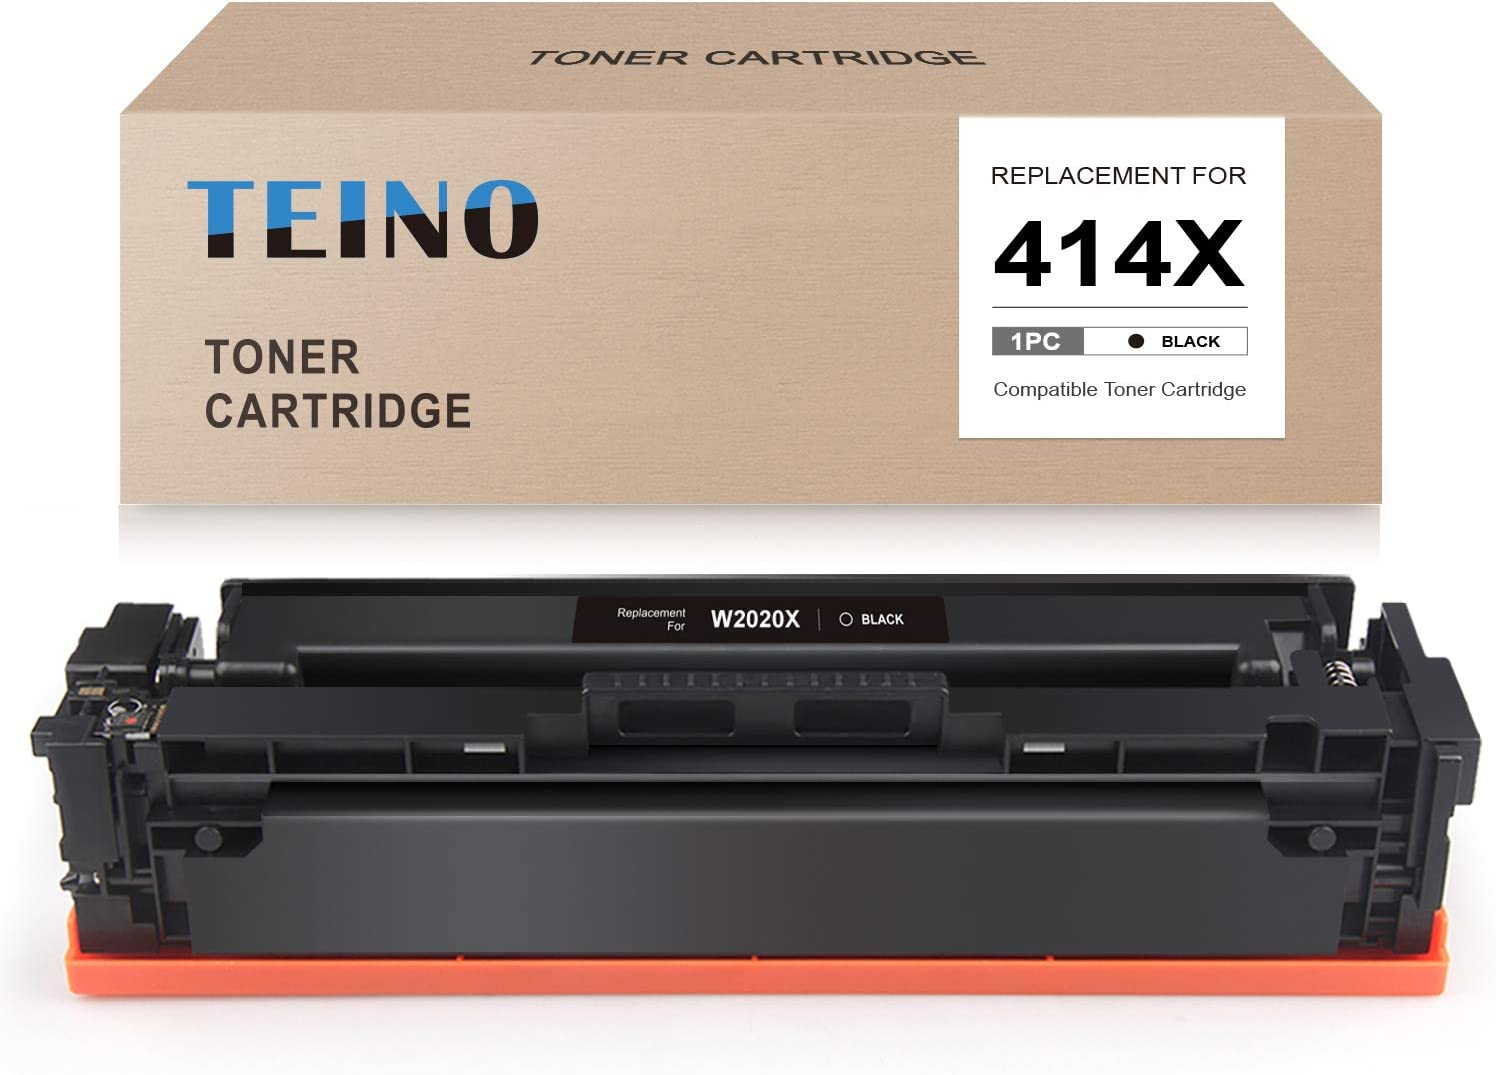 TEINO (No Chip) Compatible Toner Cartridge Replacement for HP 414X 414A W2020X W2020A use with HP Color Laserjet Pro MFP M479fdw M479fdn Color Laserjet Pro M454d M454dn (Black, 1-Pack)